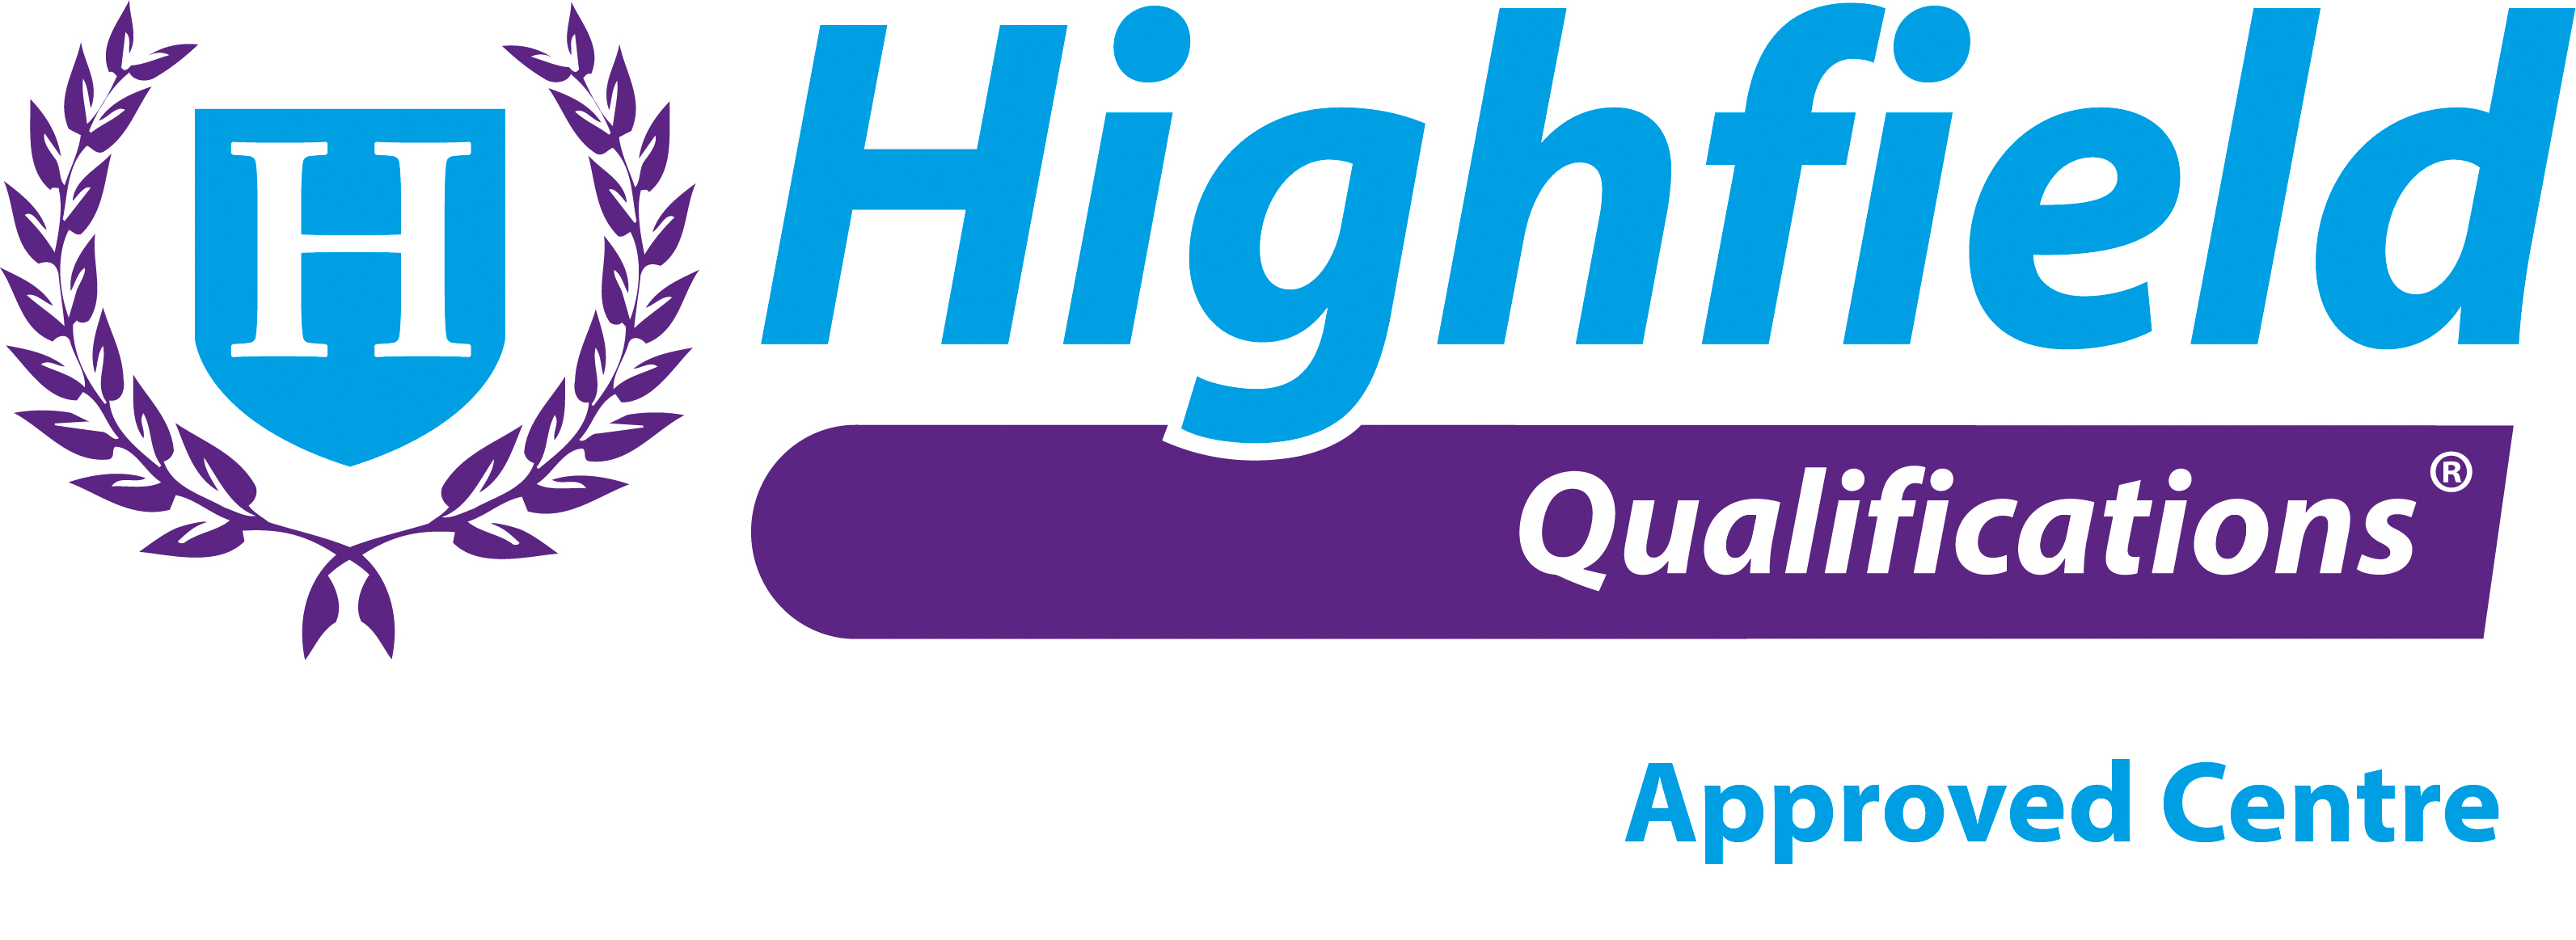 Highfield Logo - Highfield approved courses